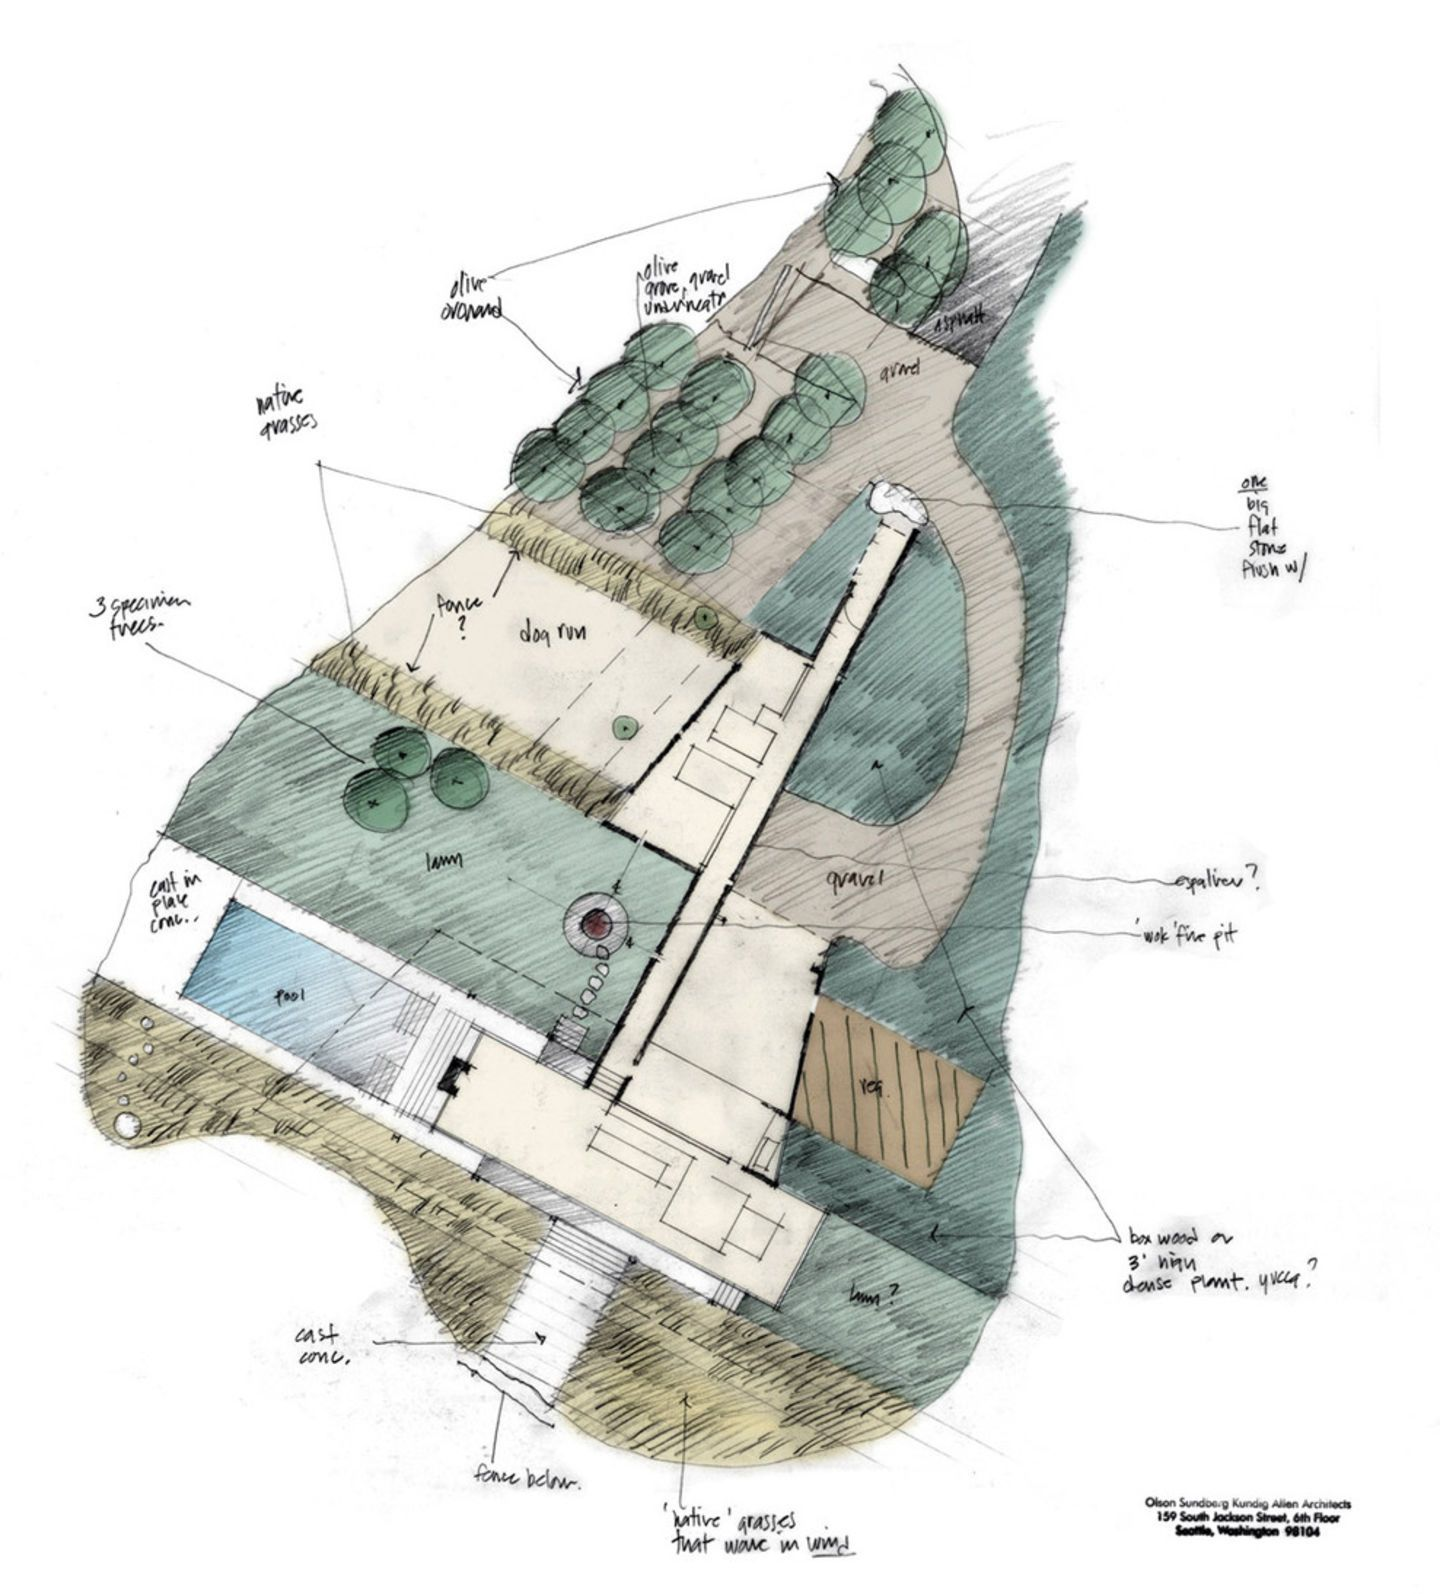 Montecito landscape diagramg 14401594 architectural montecito landscape diagramg 14401594 architectural drawings pinterest architecture drawings contemporary architecture and architects pooptronica Gallery